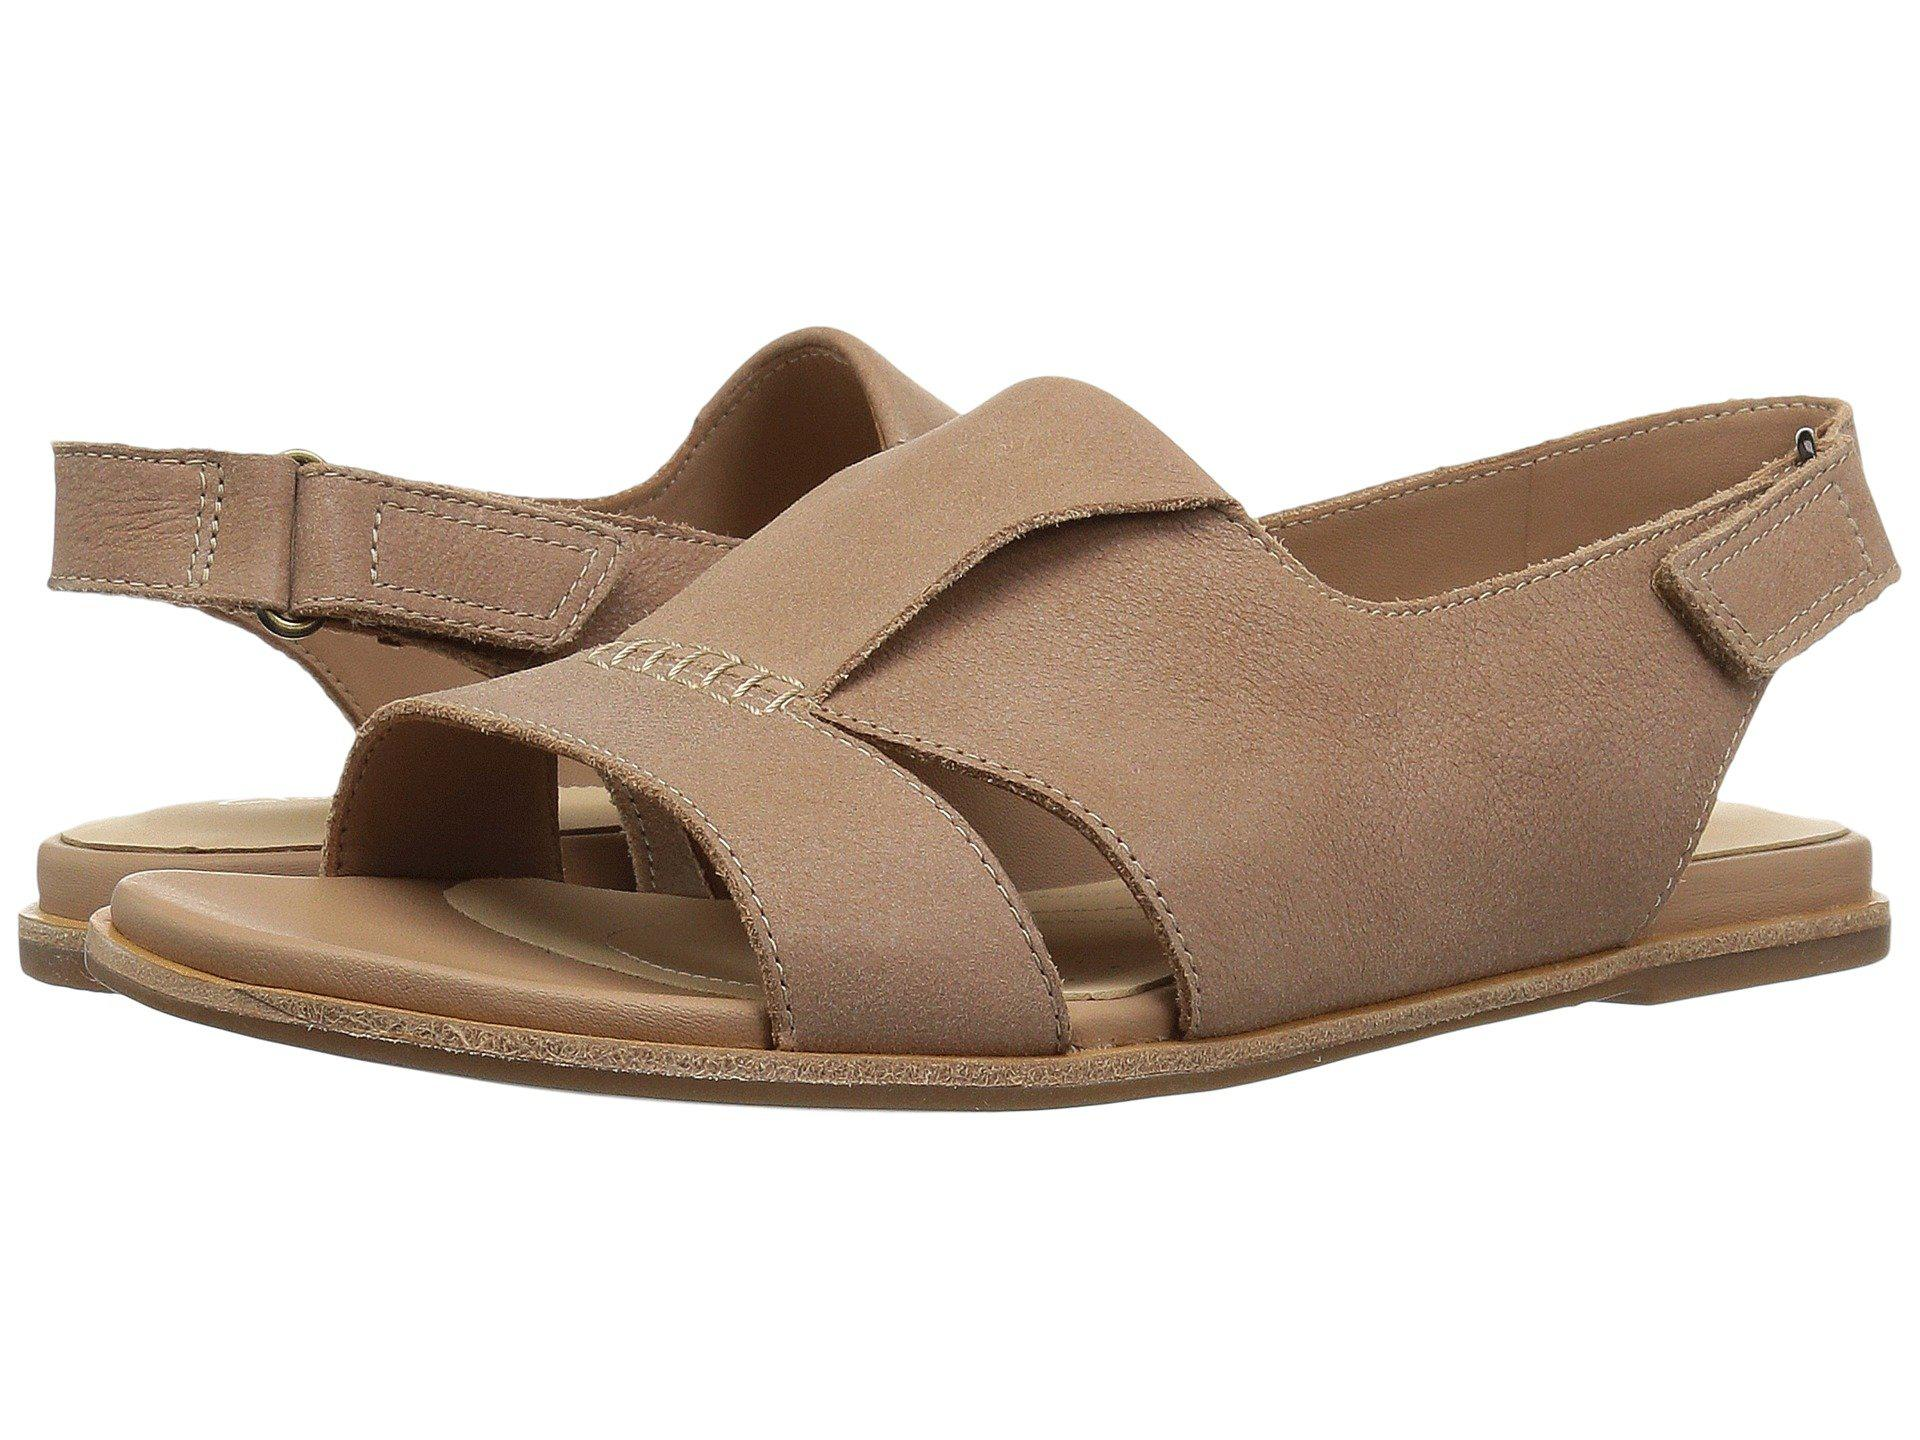 7a1770bc5ee0 Lyst - Clarks Sultana Rayne in Natural - Save 24.615384615384613%